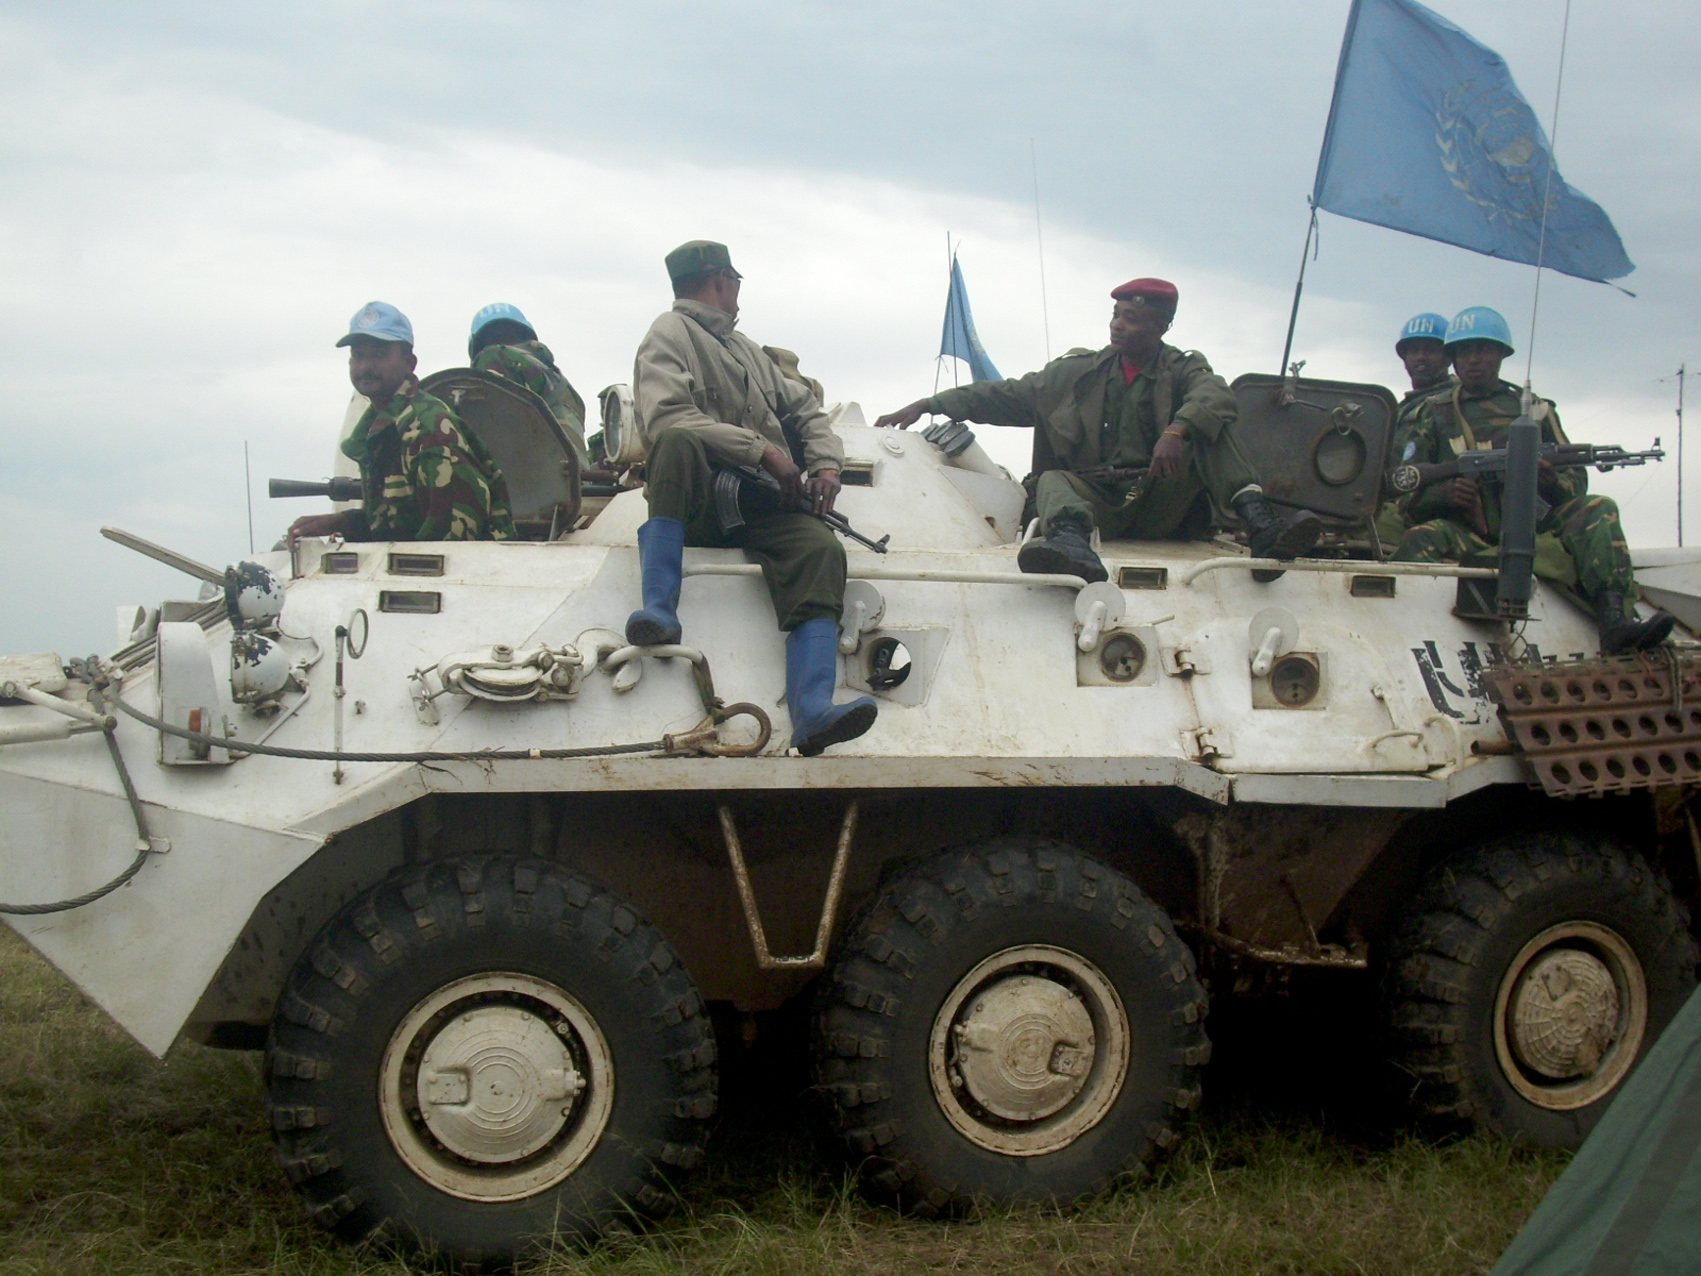 Brothers in arms… Congolese army troops and UN peacekeepers on joint patrol south of Bunia, the capital of Ituri district